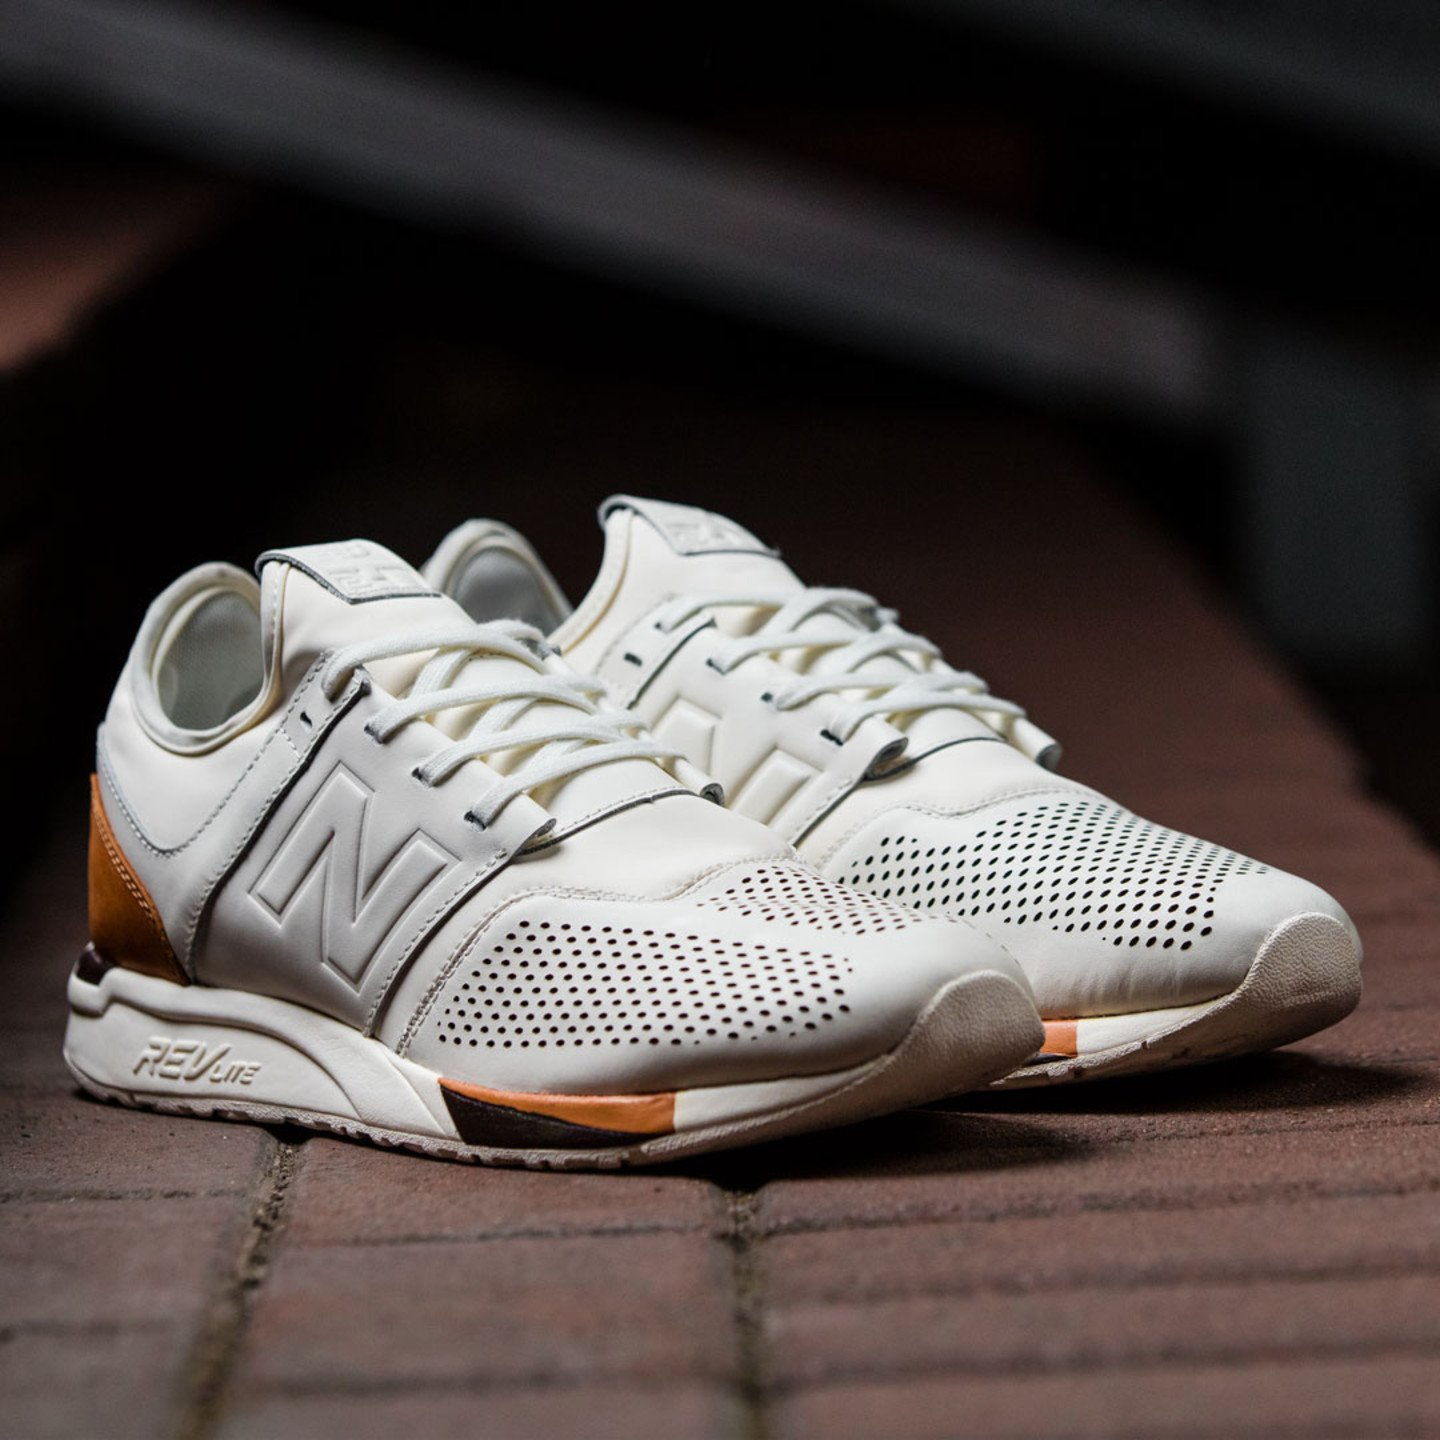 New Balance MRL 247 'Luxe Pack' Off White / Brown MRL247BE-42.5